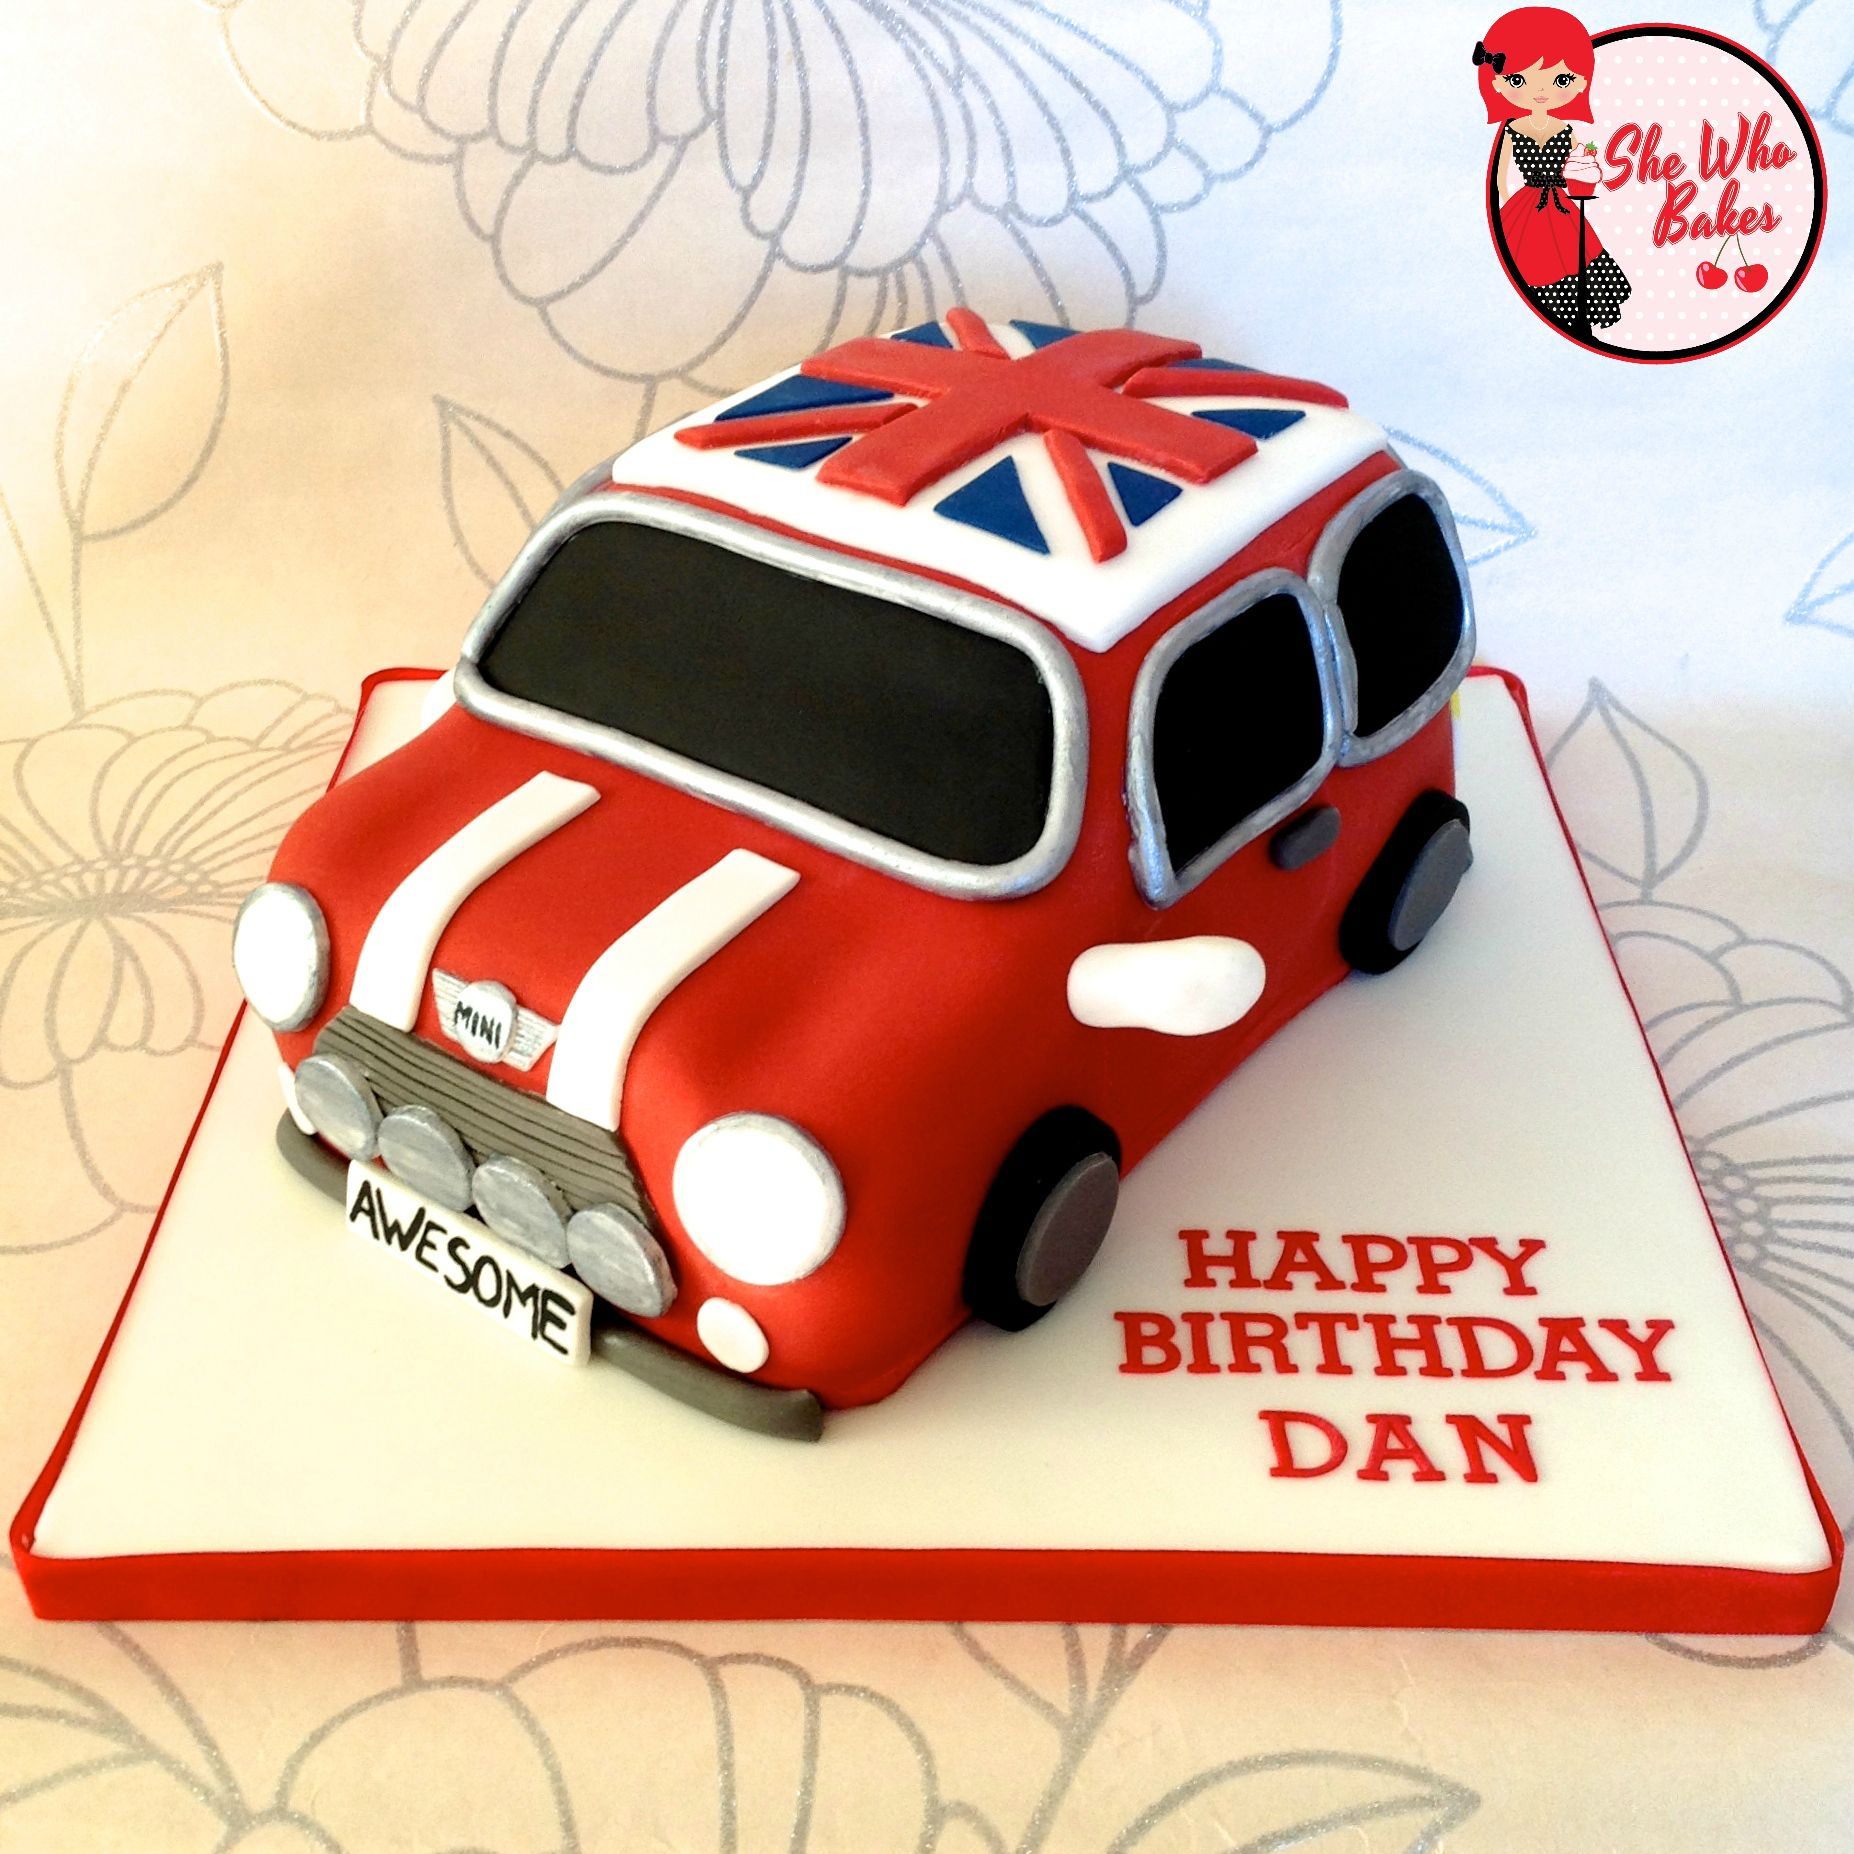 mini cooper wedding cake topper hello bakers here is a step by step tutorial of how to 17393